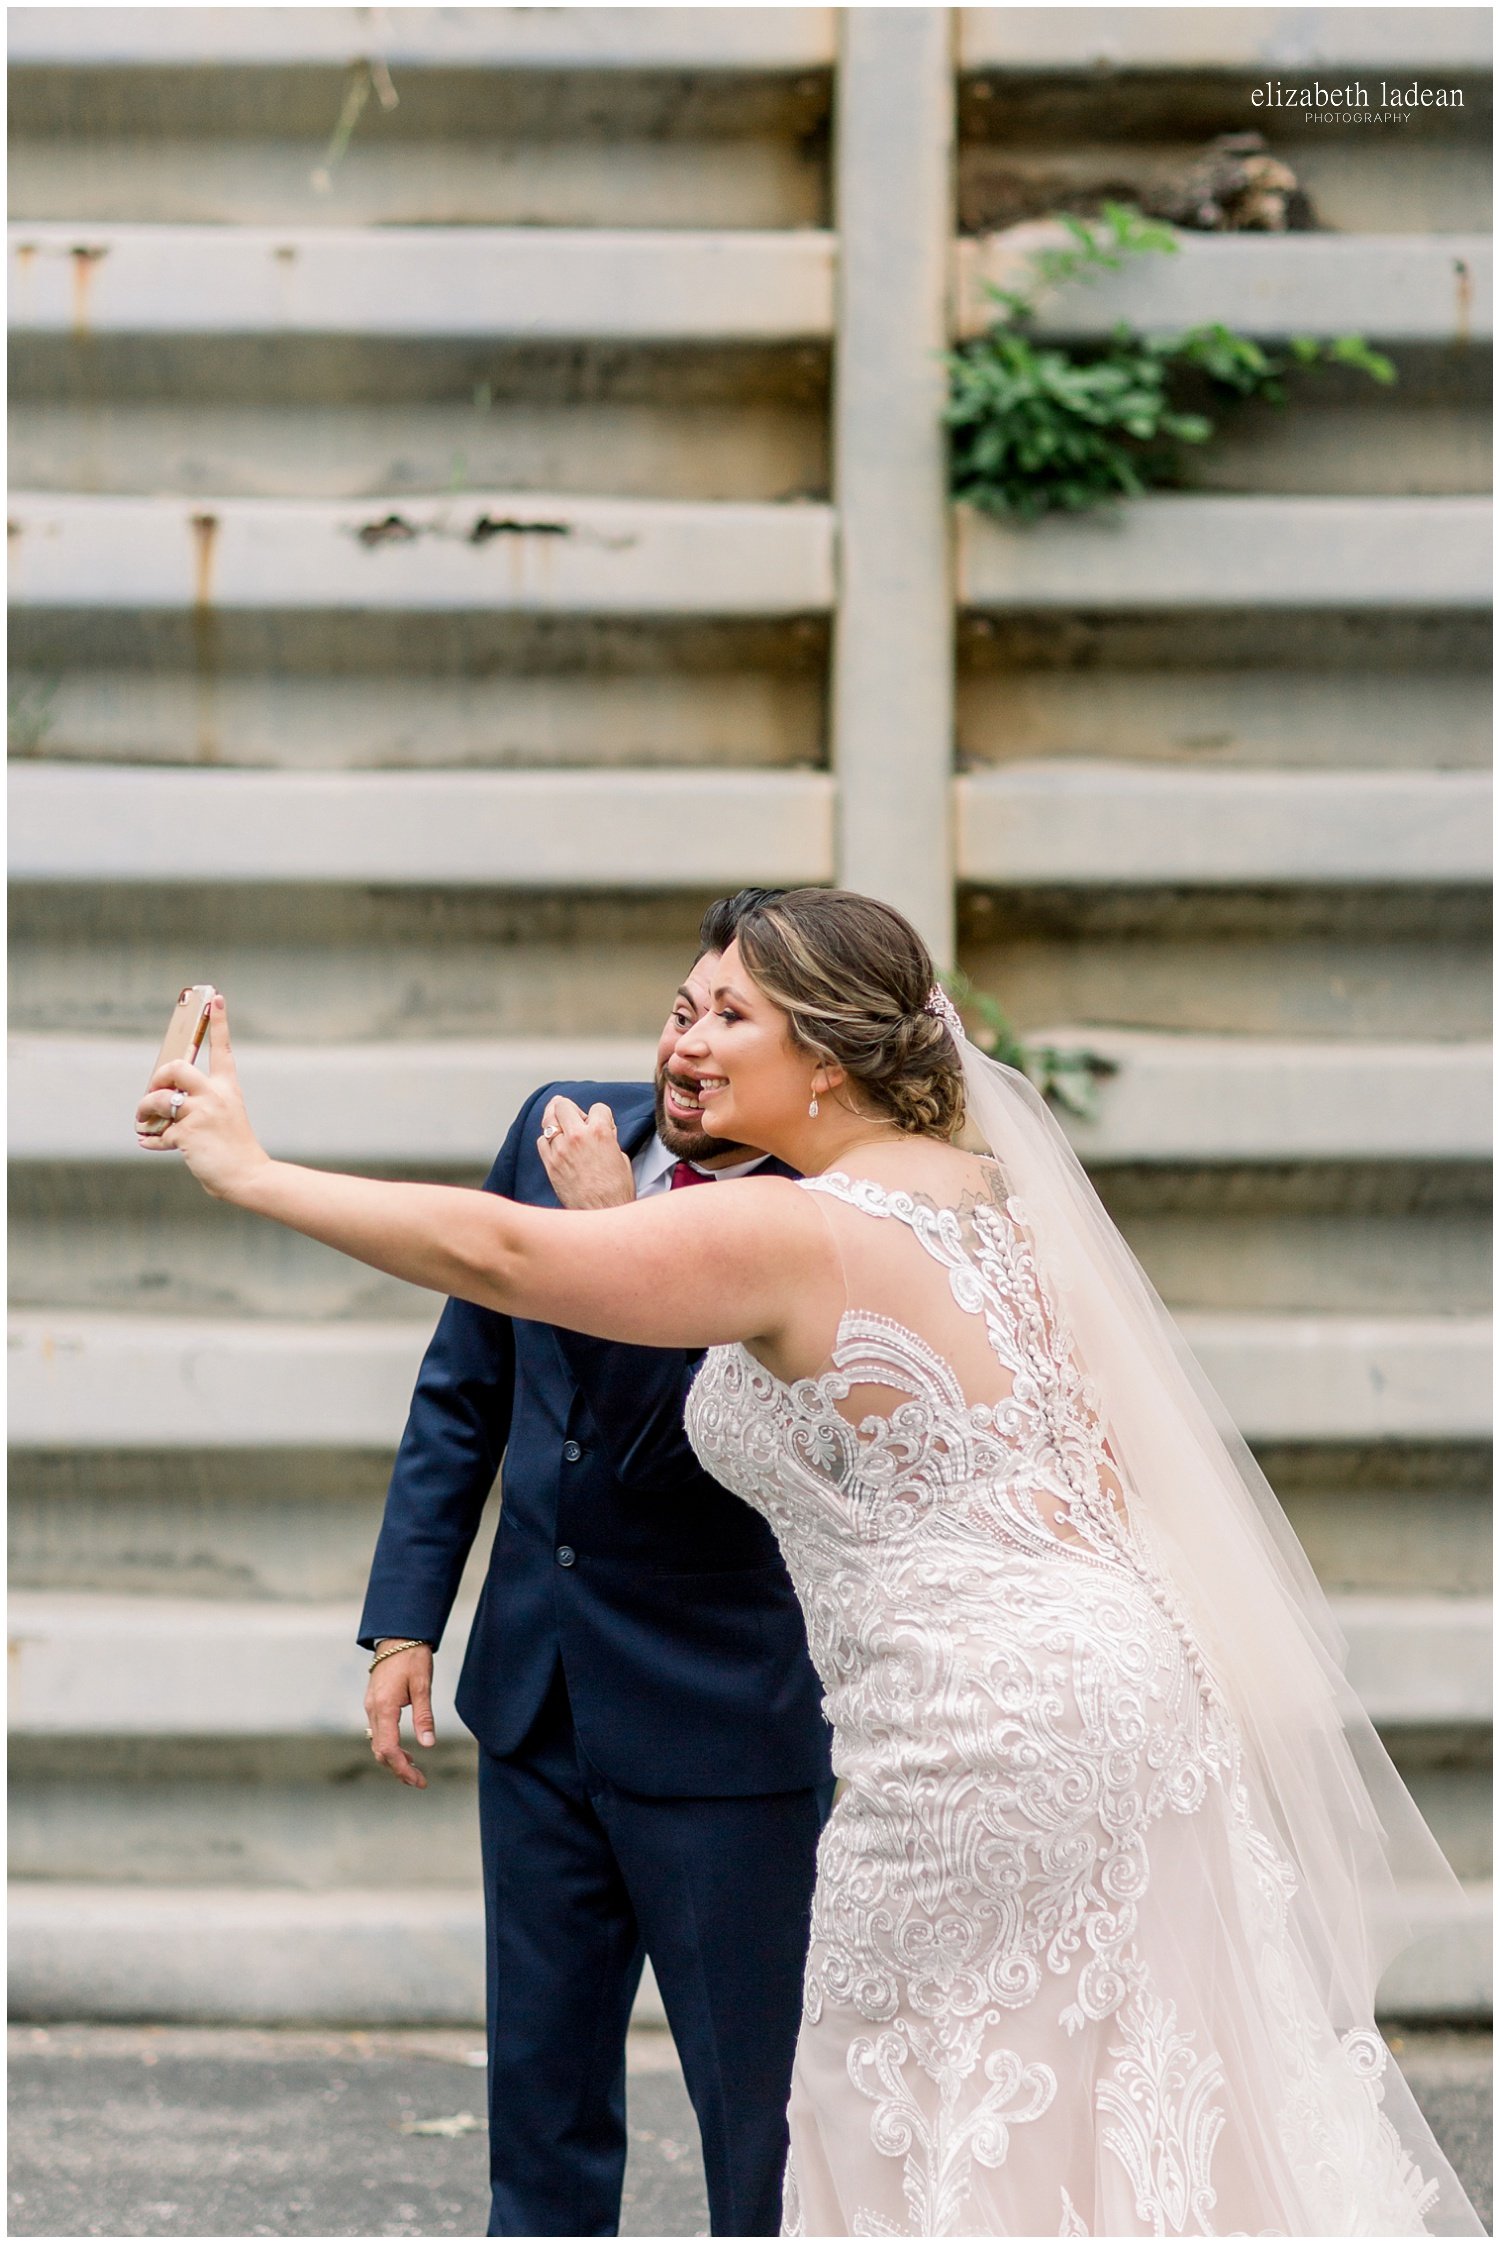 -behind-the-scenes-of-a-wedding-photographer-2018-elizabeth-ladean-photography-photo_3556.jpg